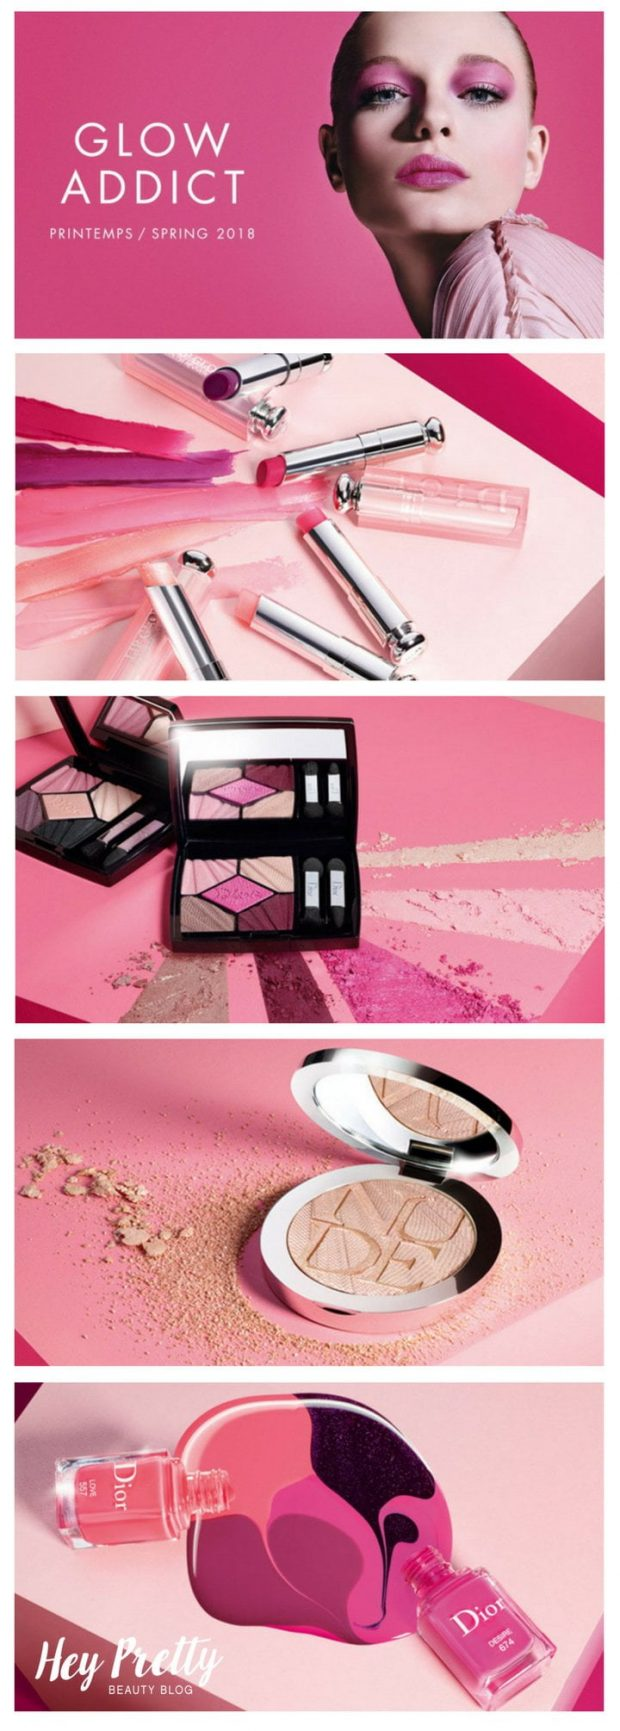 Get Your Glow On with Dior's Spring Look 2018: Glow Addict (Review on Hey Pretty)